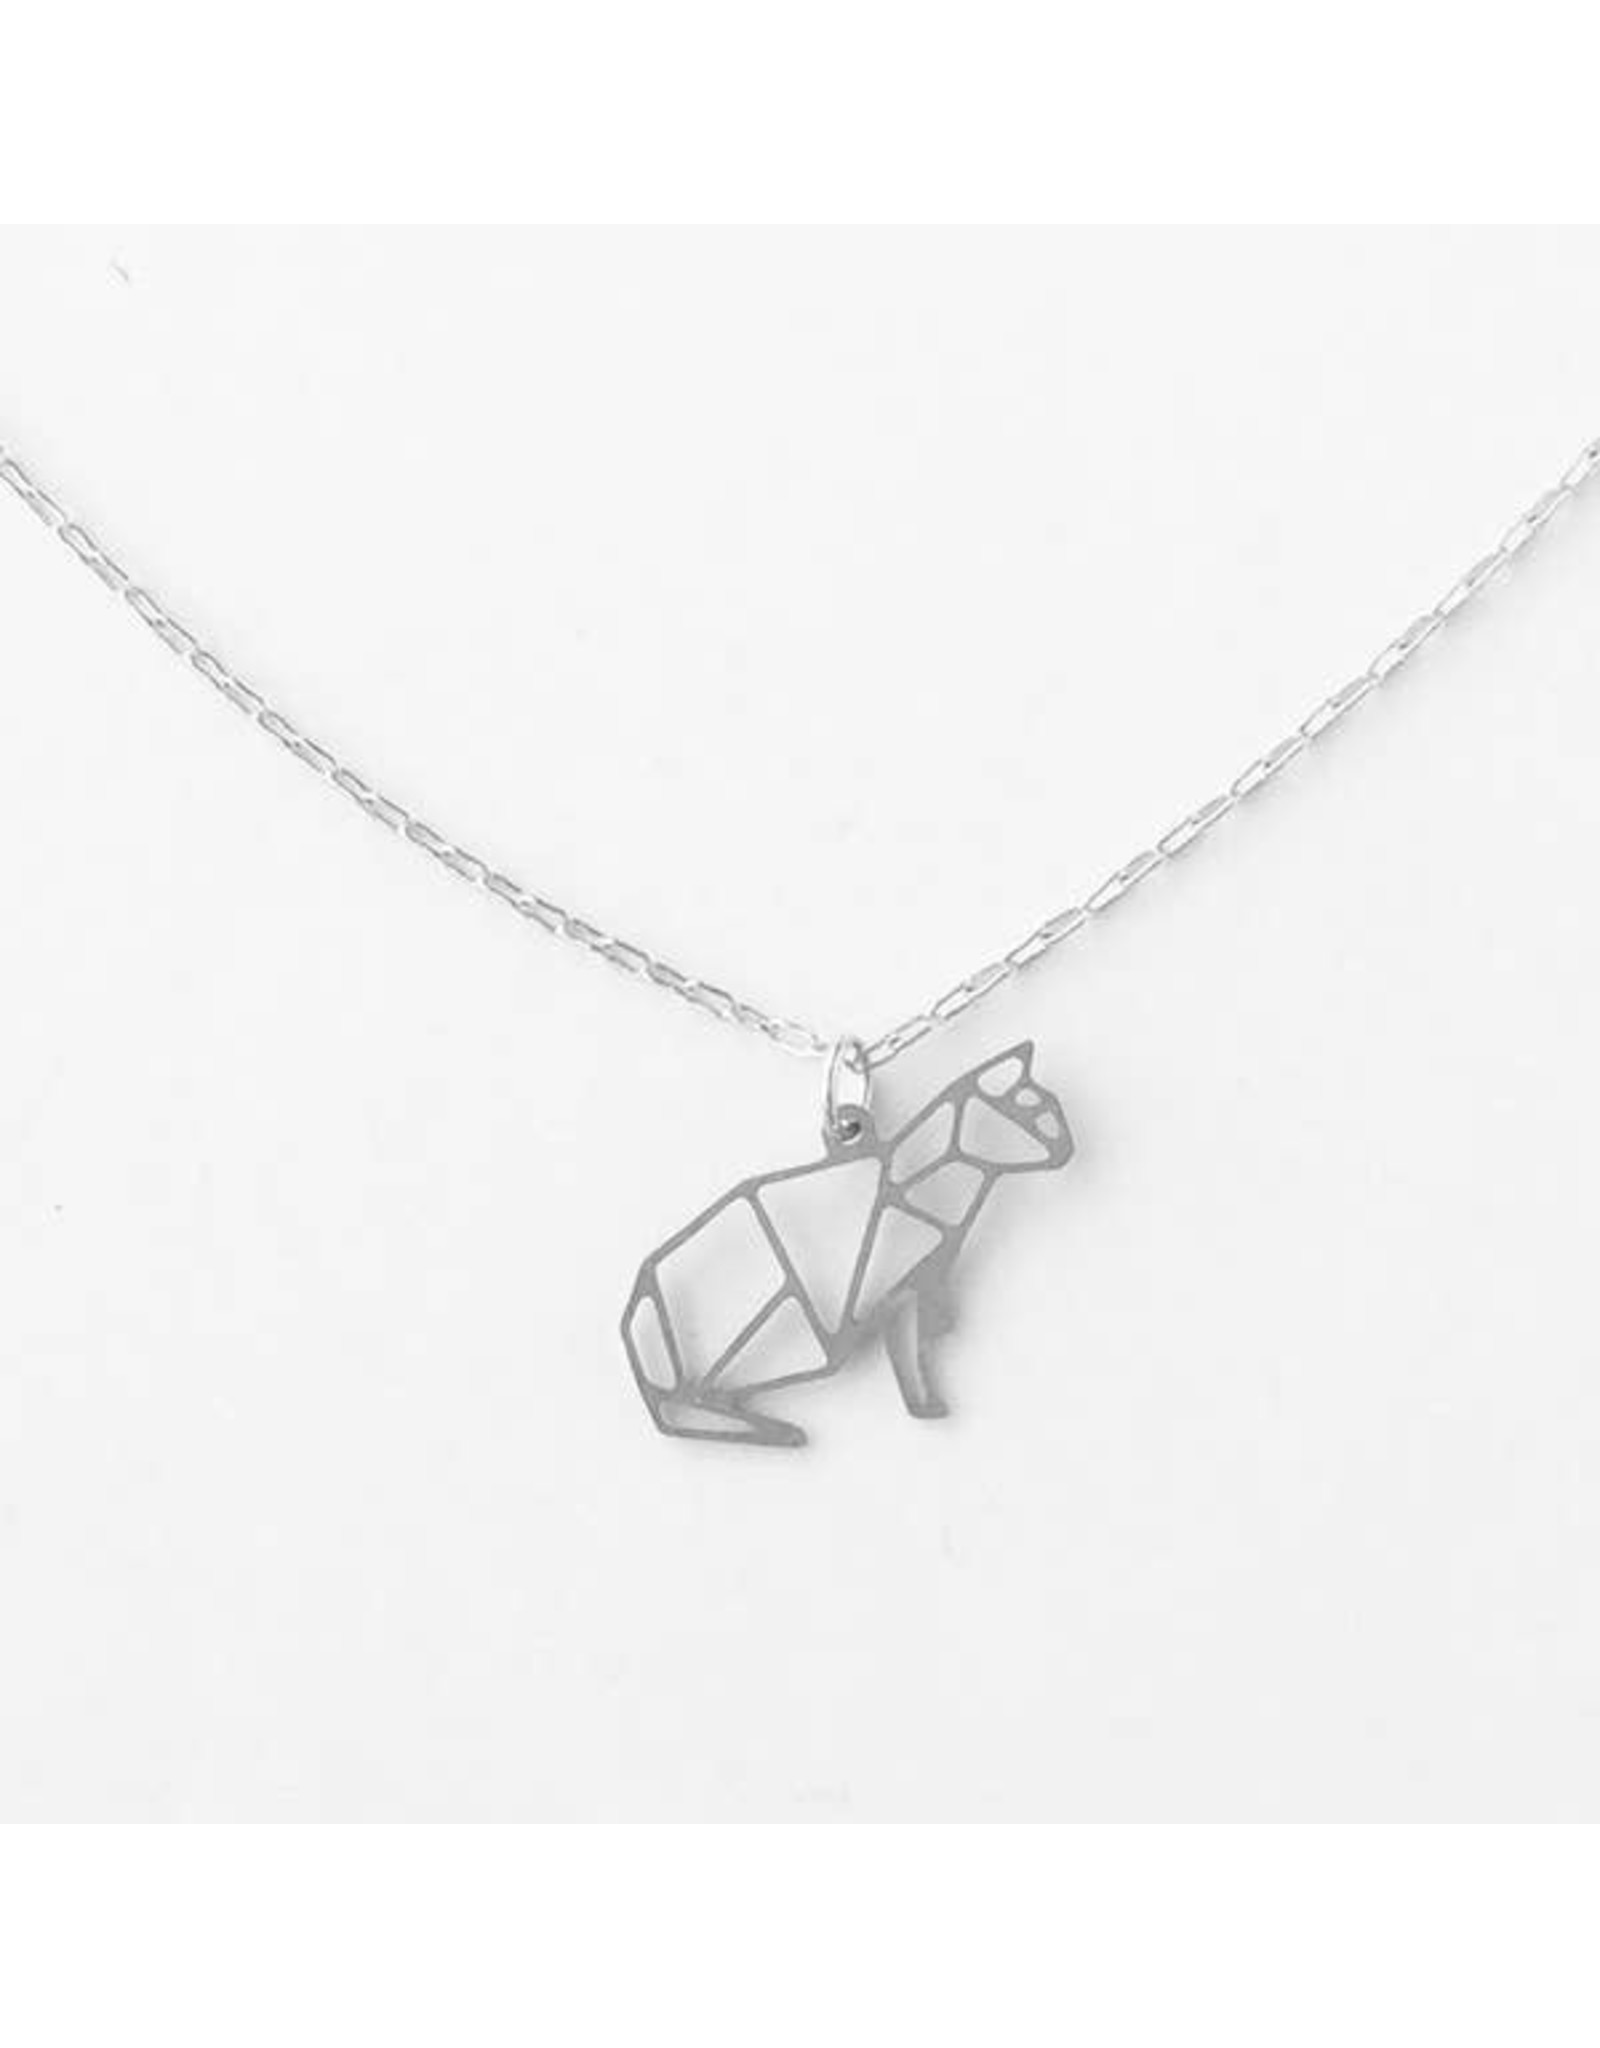 TLJ  Kitty Cat Necklace: Silver